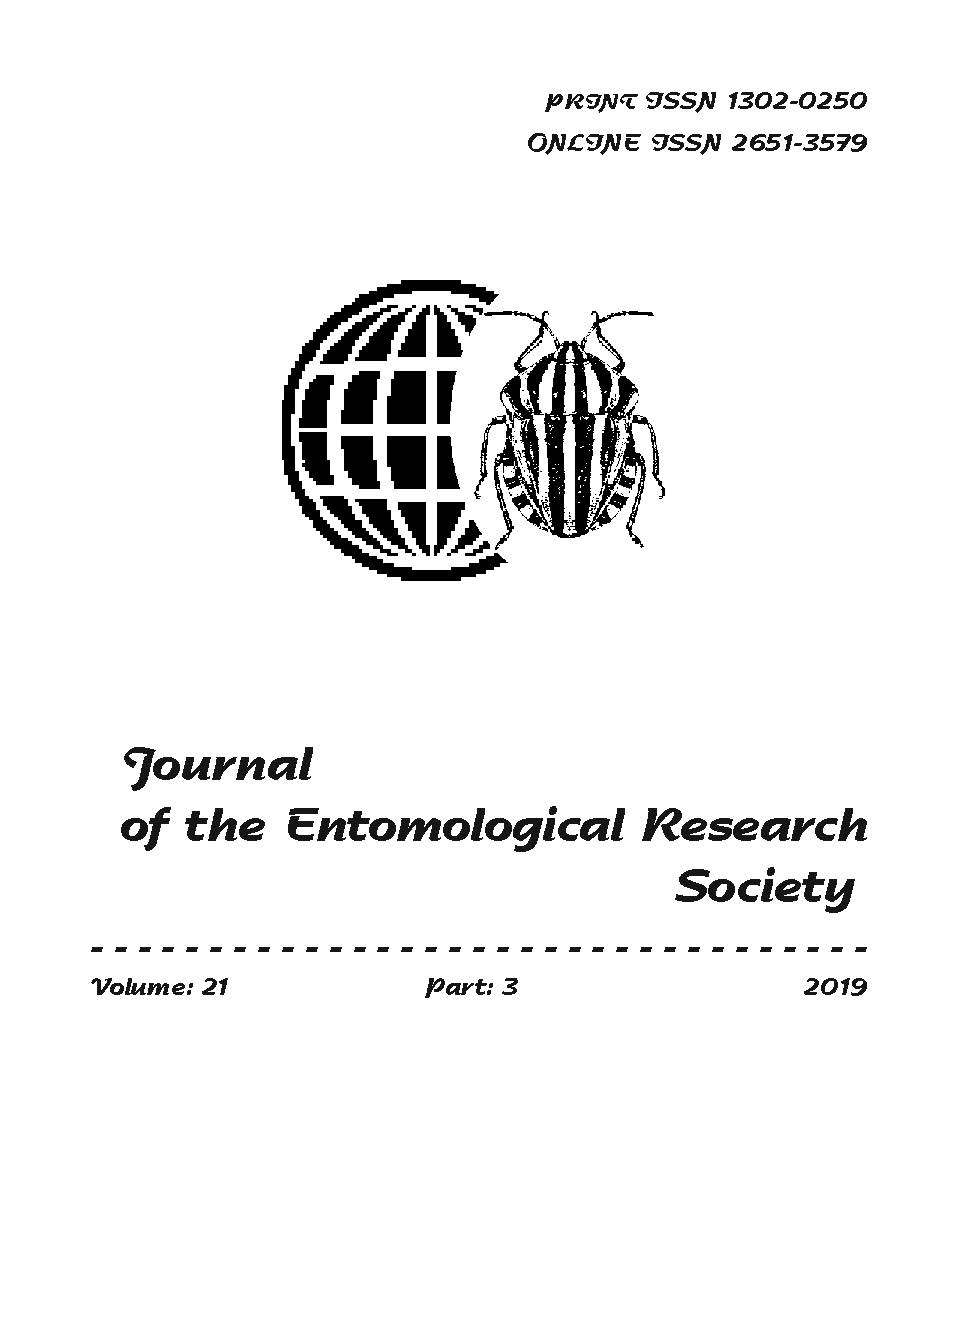 View Vol. 21 No. 3 (2019): Journal of the Entomological Research Society